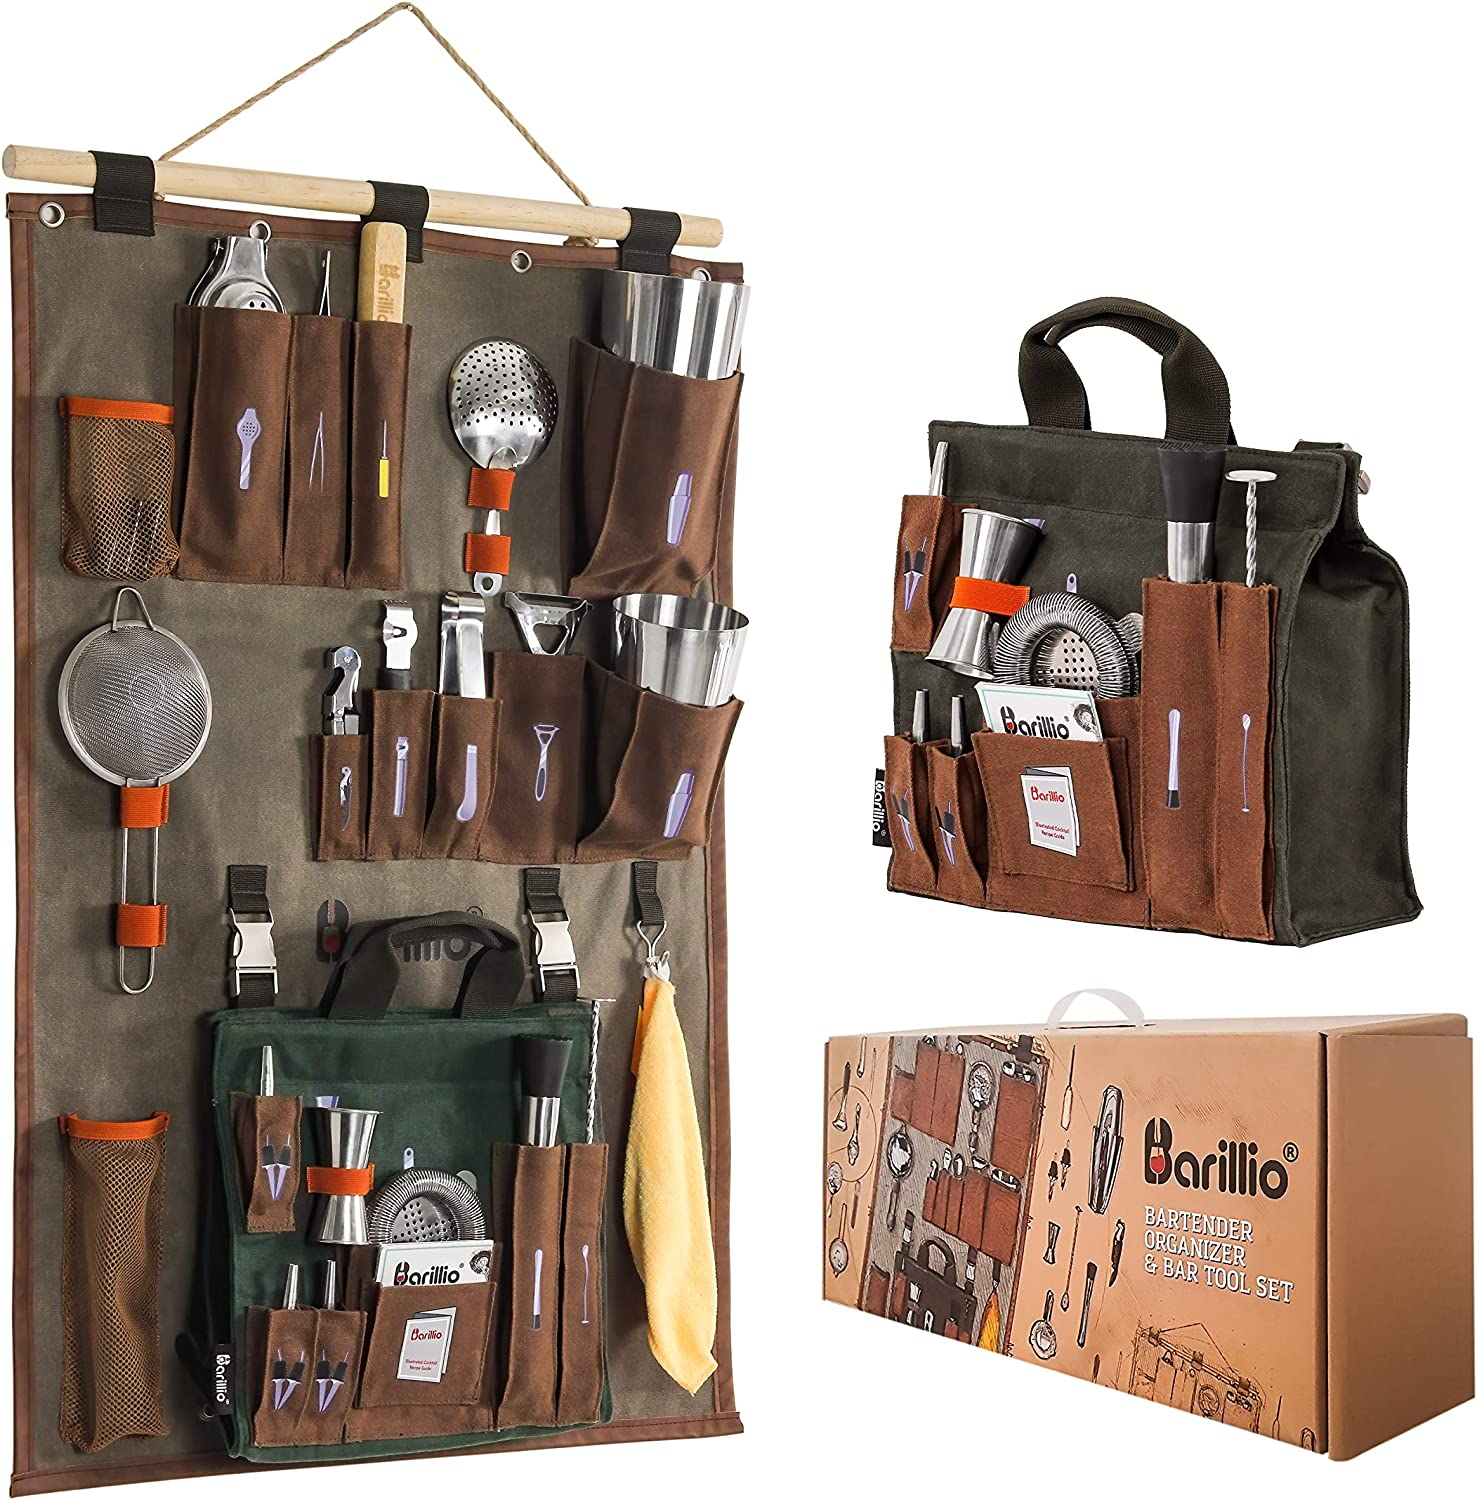 Bartender Wall Organizer With Bar tool Set | Professional Bartender Kit With Waxed Canvas Organiser Including Portable Bar Bag for Cocktail Kit | Perfect for Home Bartending